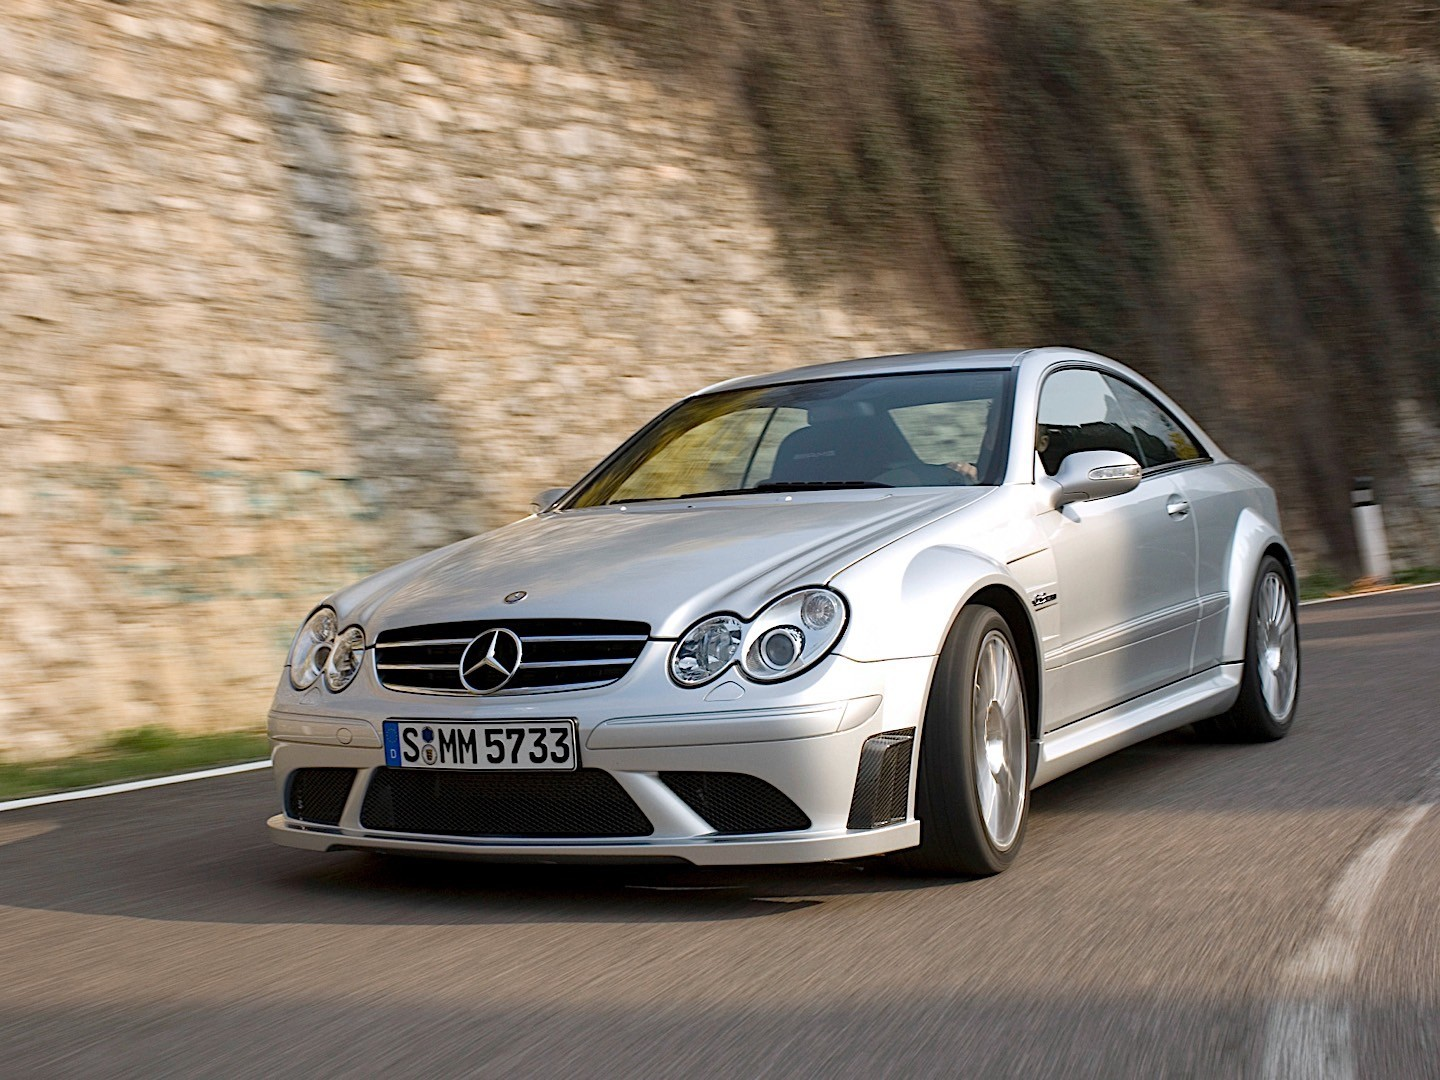 Mercedes benz clk 63 amg black series c209 specs 2007 for Mercedes benz s series